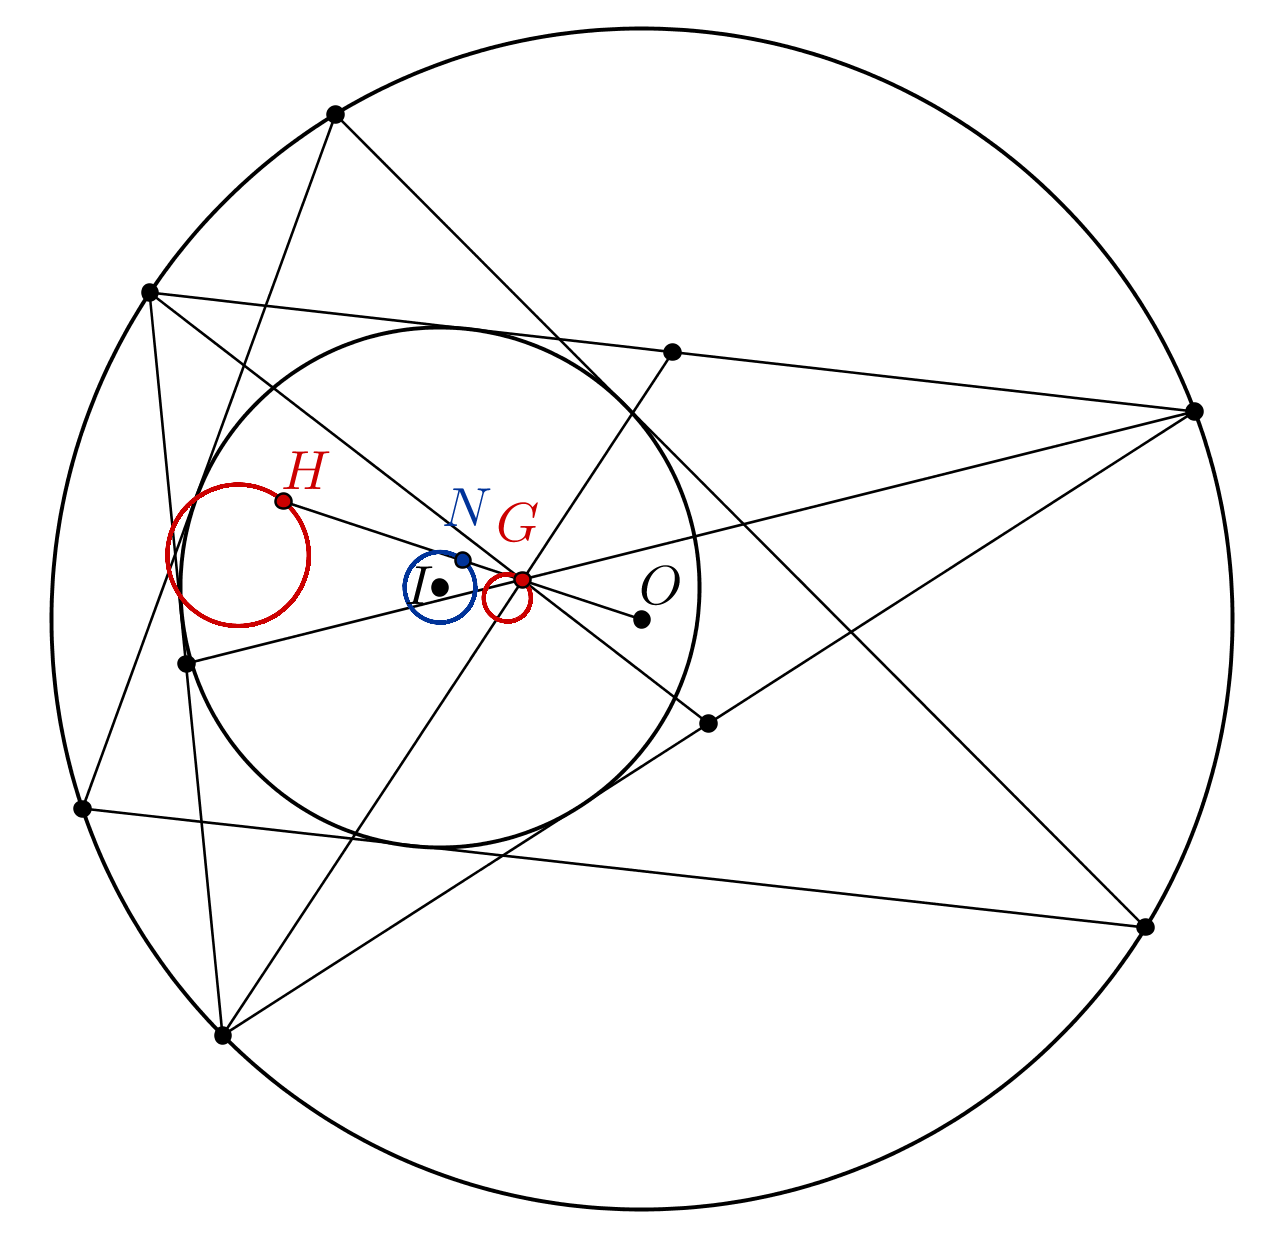 Angle Between Triangle Orthocenter Center Of Inscribed